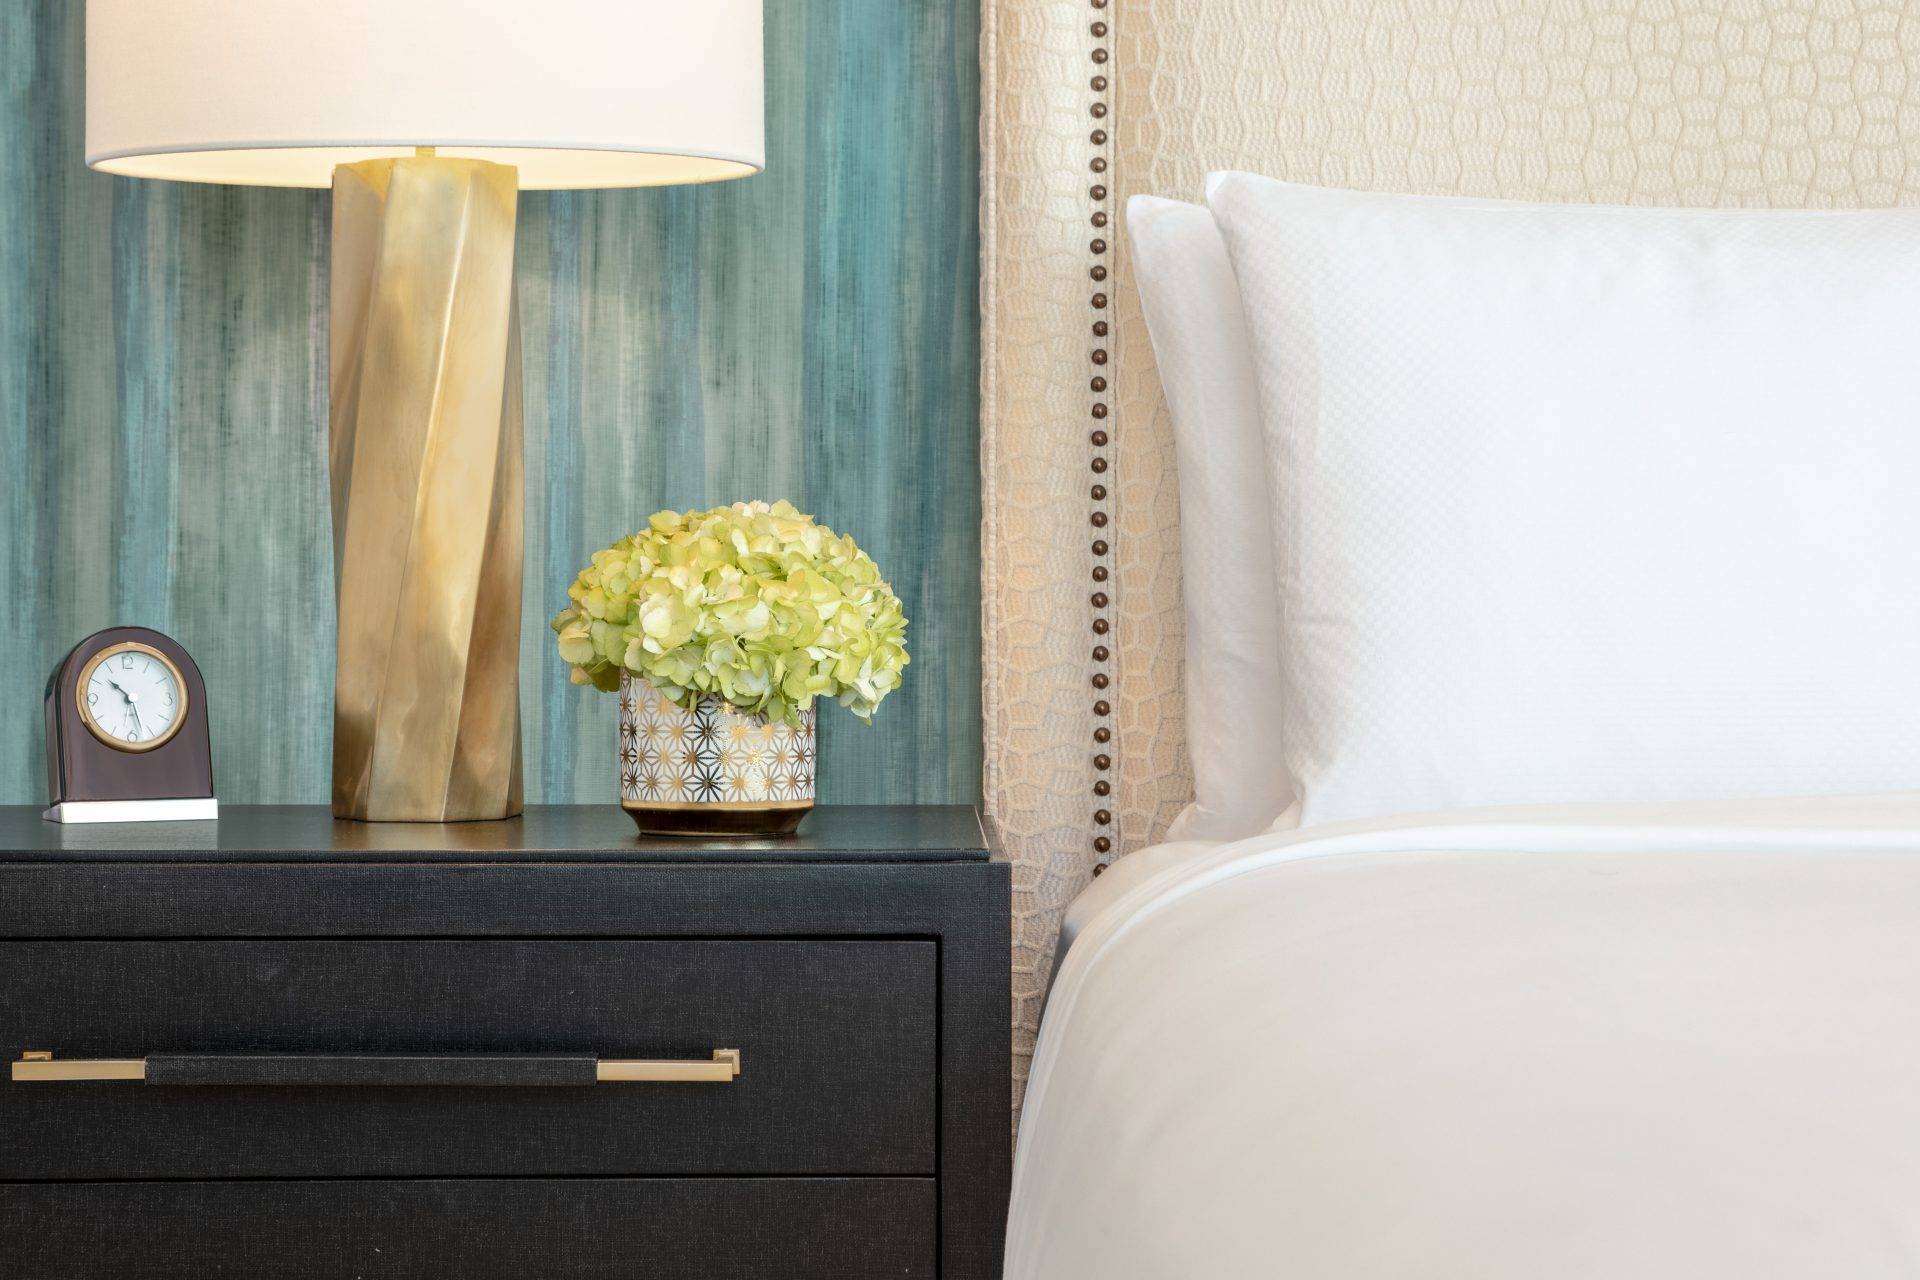 Close up view of end table with clock, twisted brass lamp, bouquet next to luxurious bed